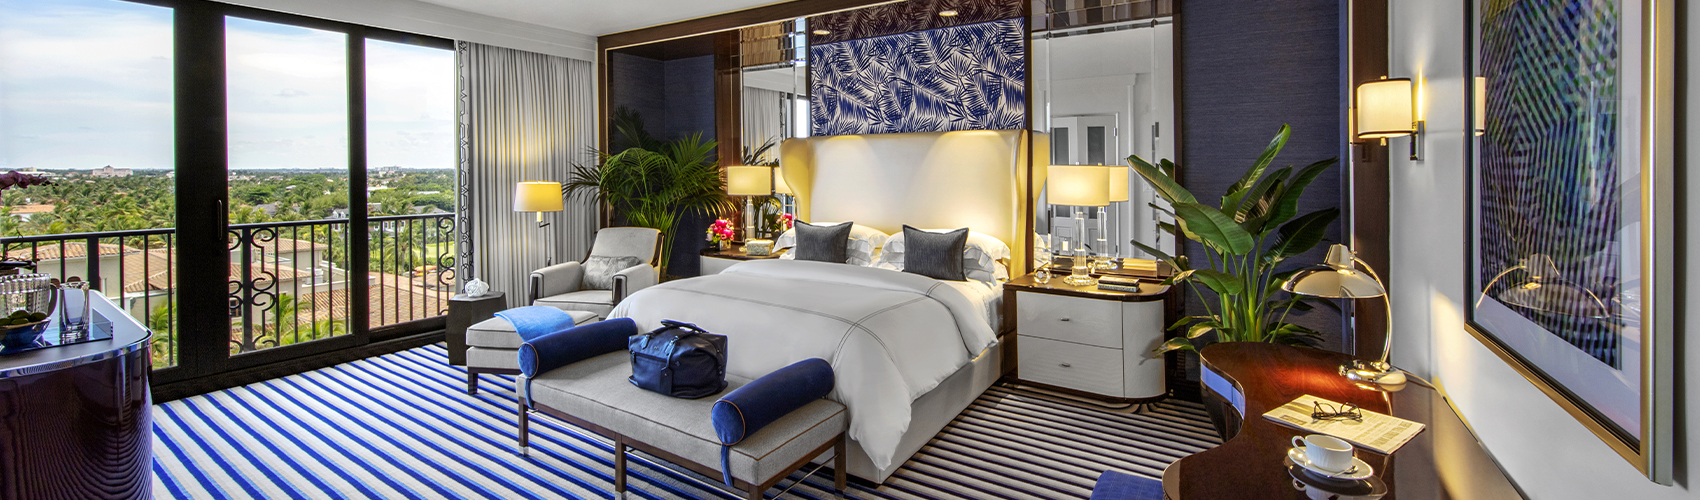 Imperial Suite with Oceanfront View Bedroom